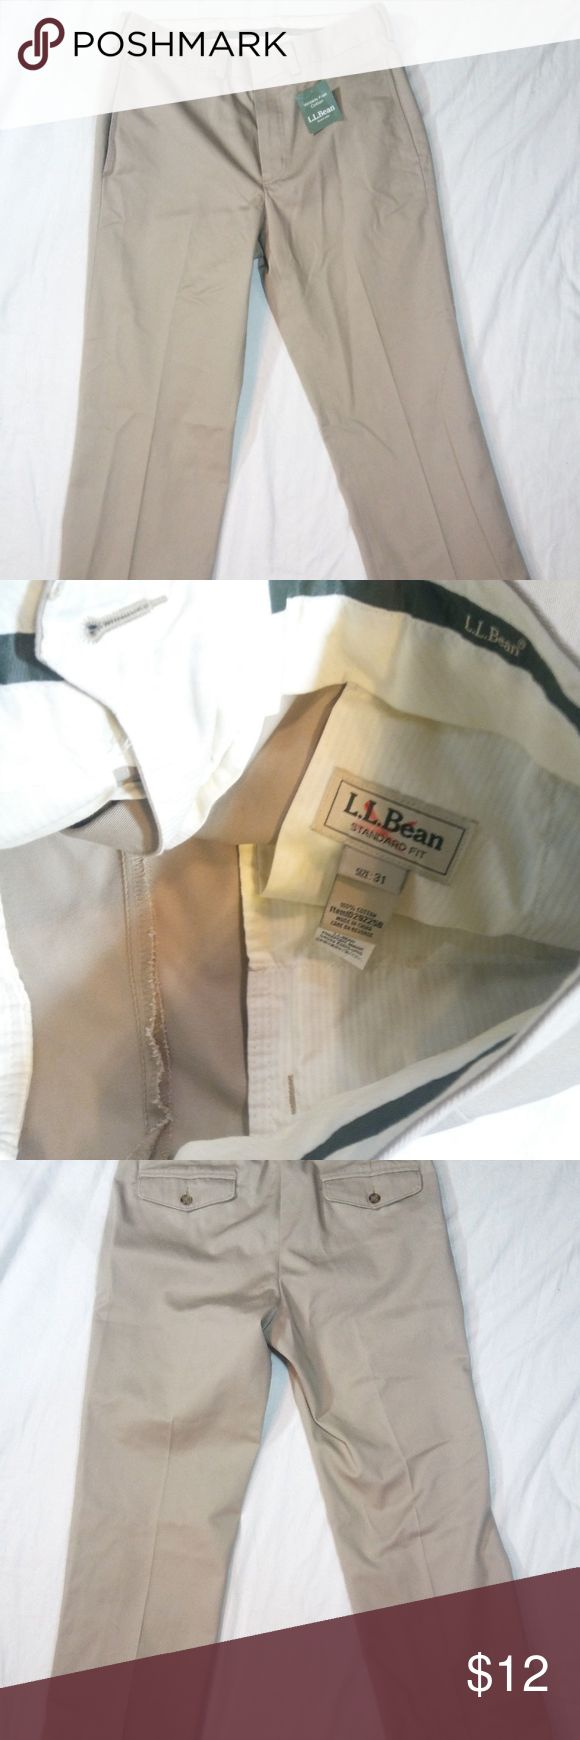 """LL Bean Men's Dress Chinos Khaki 31-26 Up for sale is a pair of LL Bean Men's Wrinkle-Free Dress Chinos Color Khaki size 31-26 Standard Fit Plain front.    Pants are pre owned and I would describe these pants to be in good condition with no rips, tears, or stains that I can see.   Please note this items tag has been subtly marked to prevent retail returns.  Inseam Measurement Approx. 26"""" Front Rise Measurement Approx. 11"""" Waist Measurement Approx. 31"""" Leg Opening Measurement  Approx. 8.5""""…"""